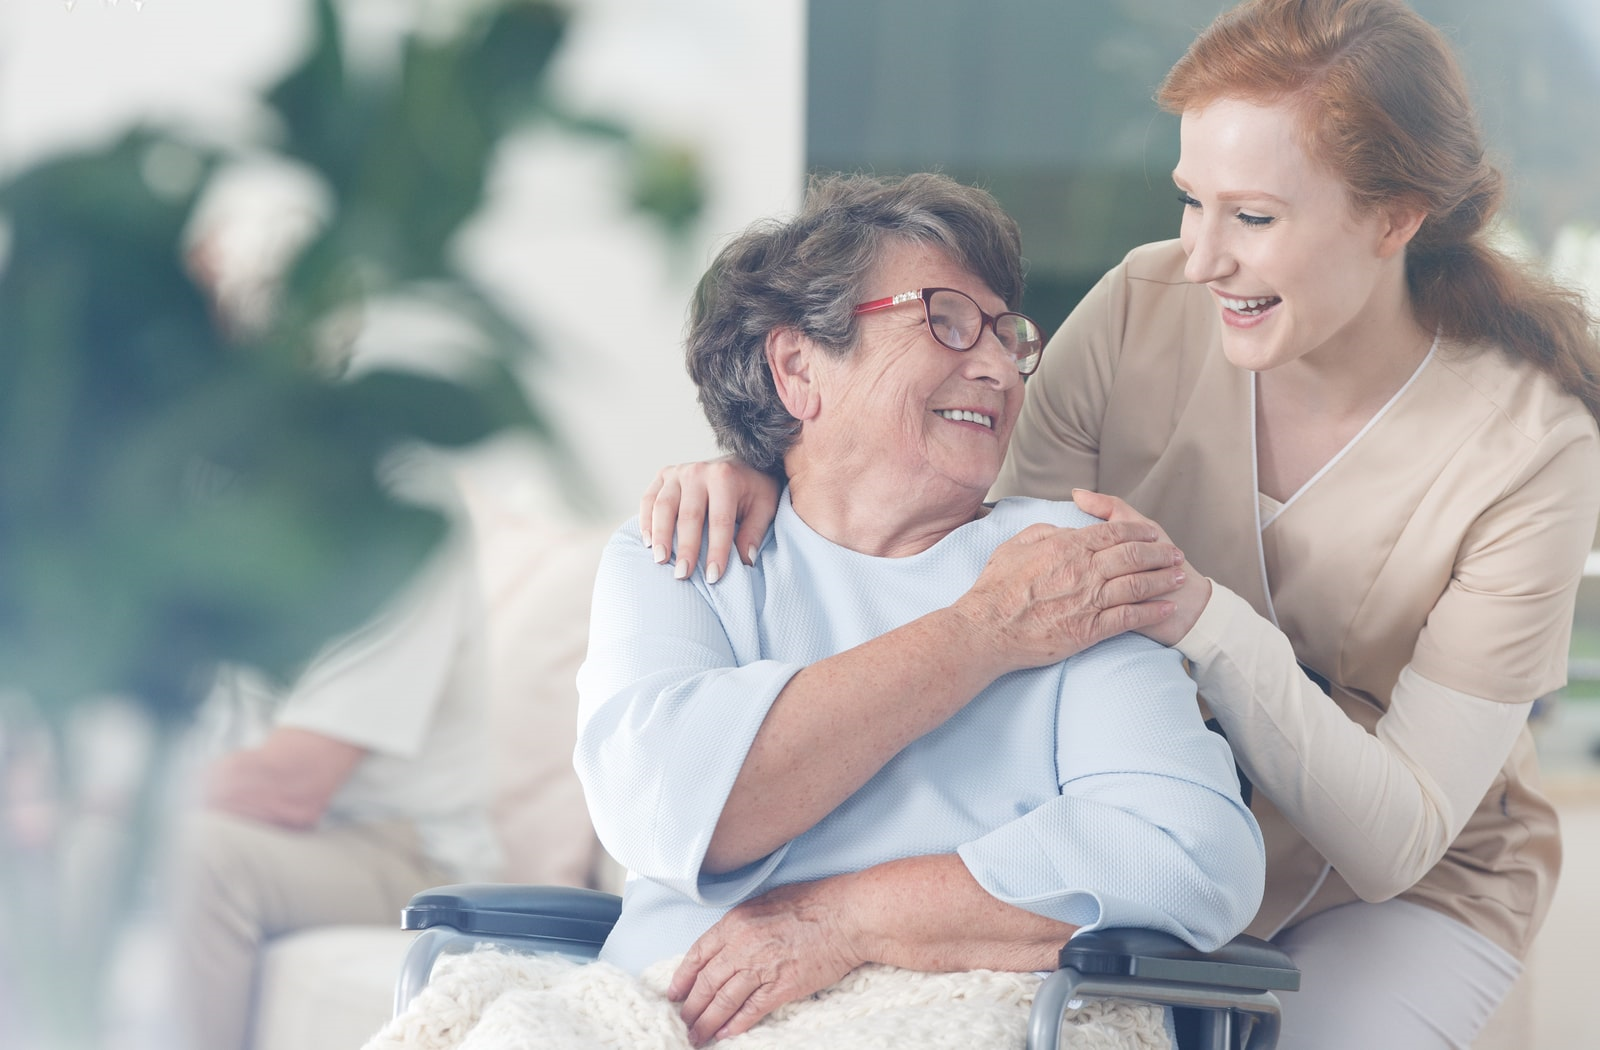 Happy woman receiving personalized care from an attendant at her assisted living community